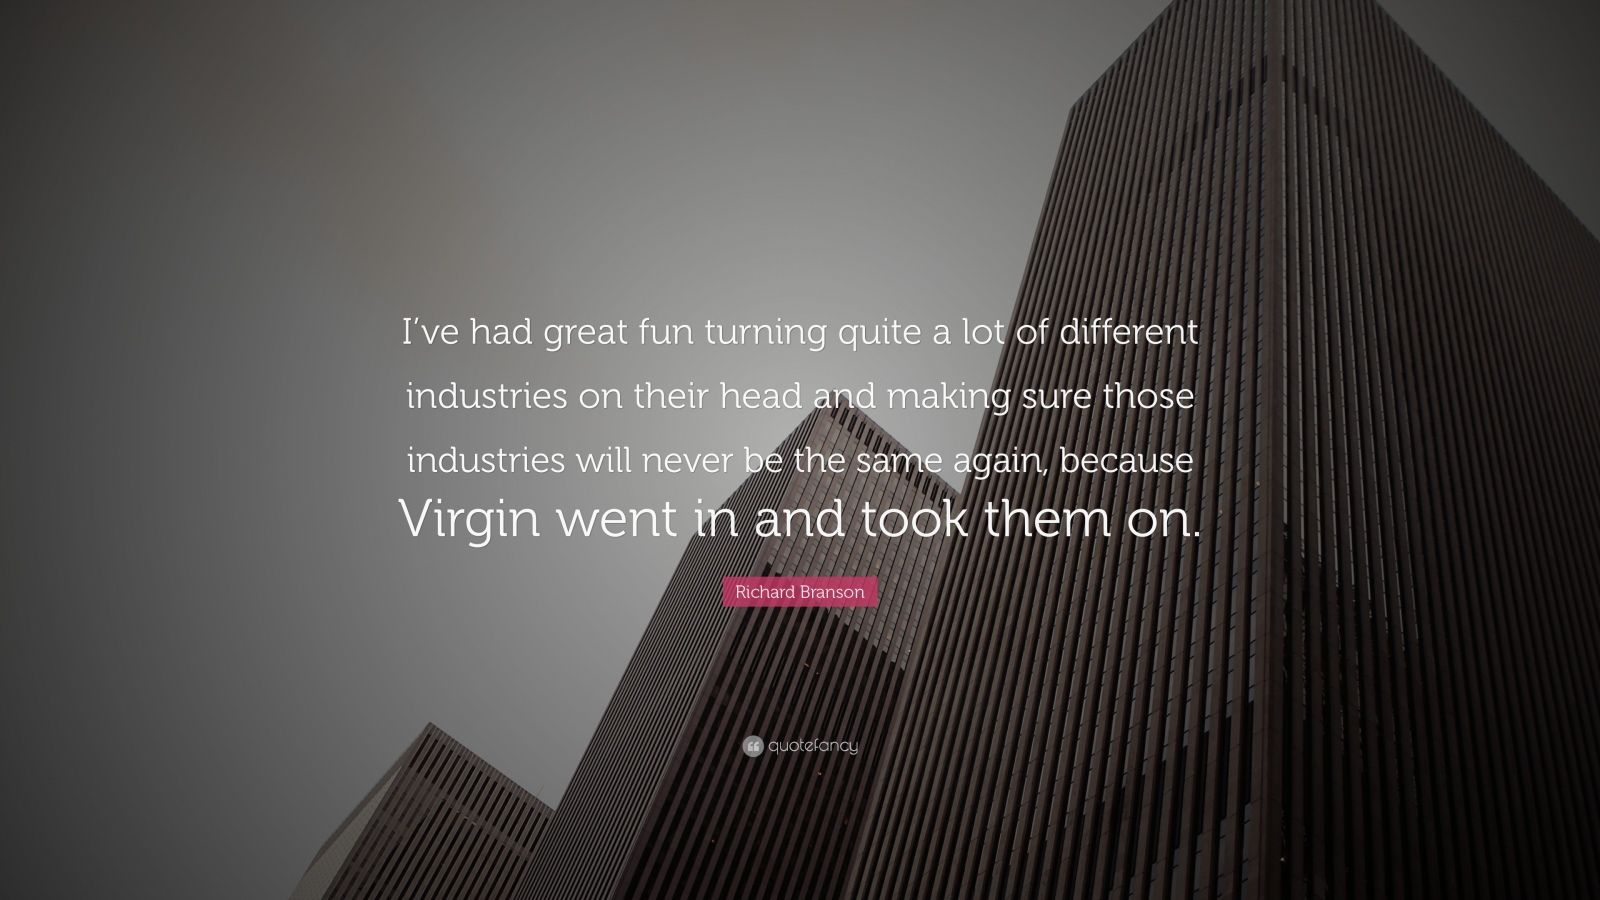 """Richard Branson Quote: """"I've had great fun turning quite a lot of different industries on their head and making sure those industries will never be the same again, because Virgin went in and took them on."""""""